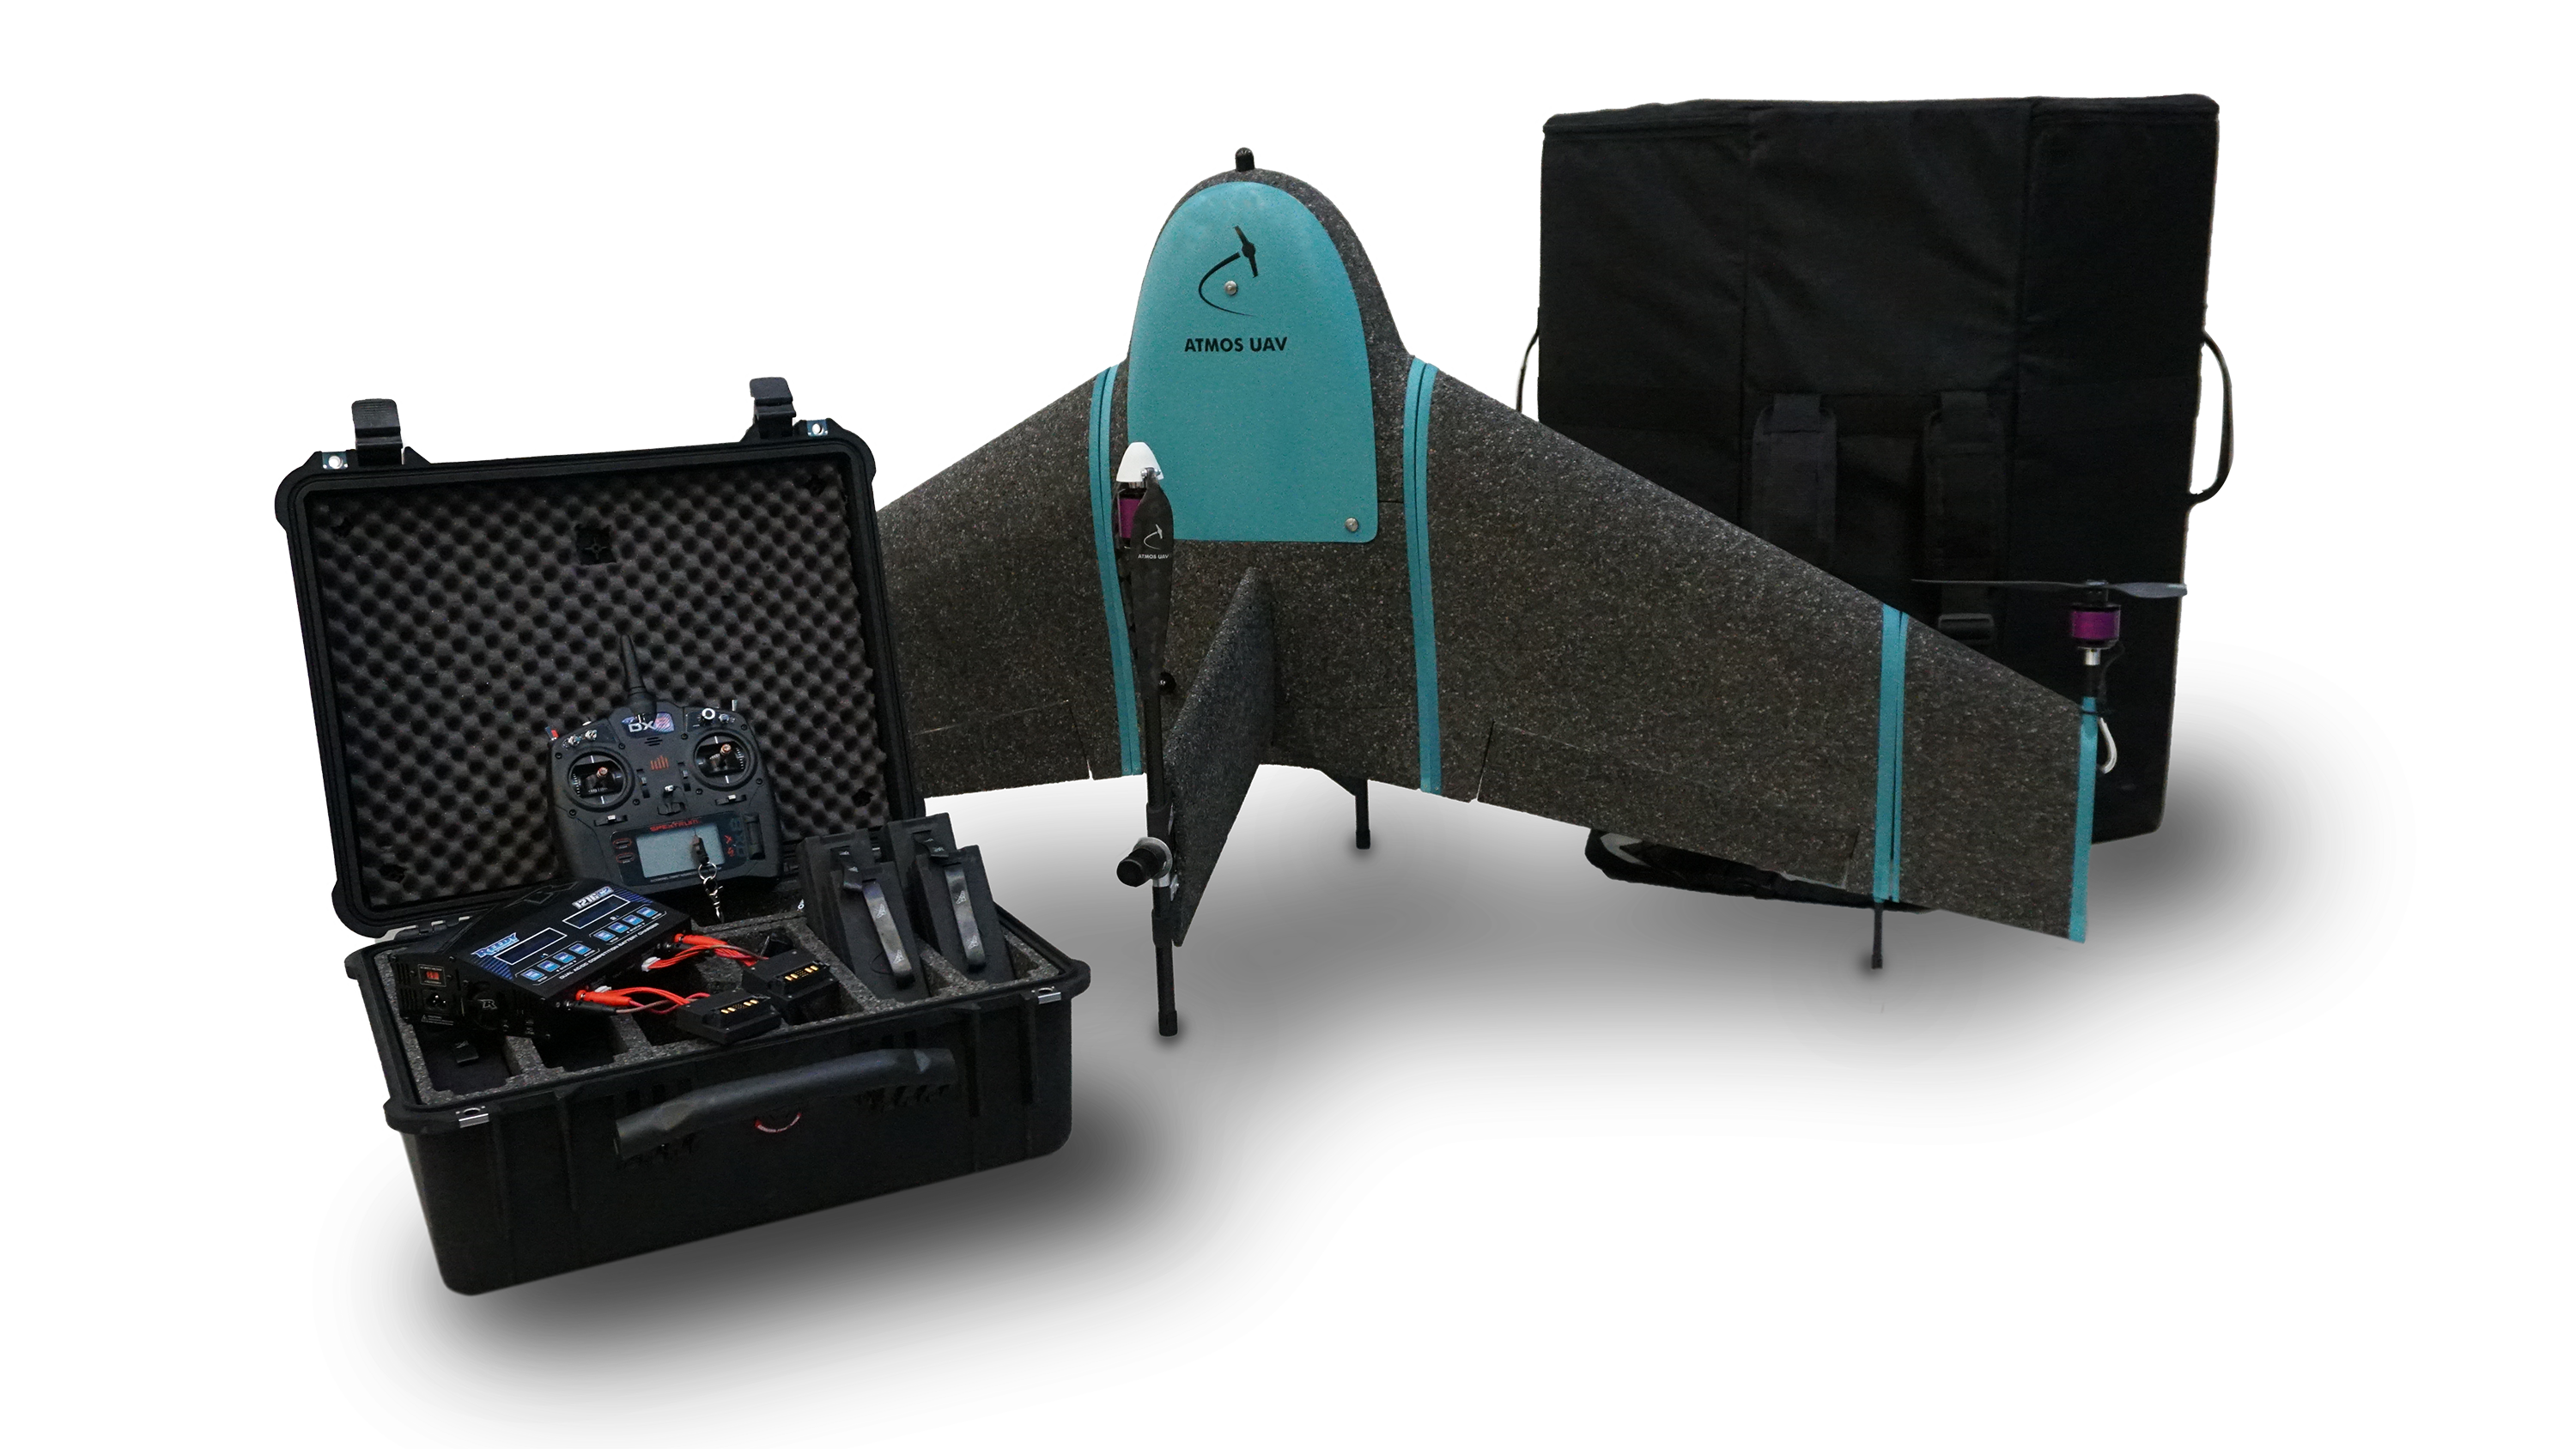 ATMOS UAV | Fixed Wing VTOL Drones for Mapping & Surveying